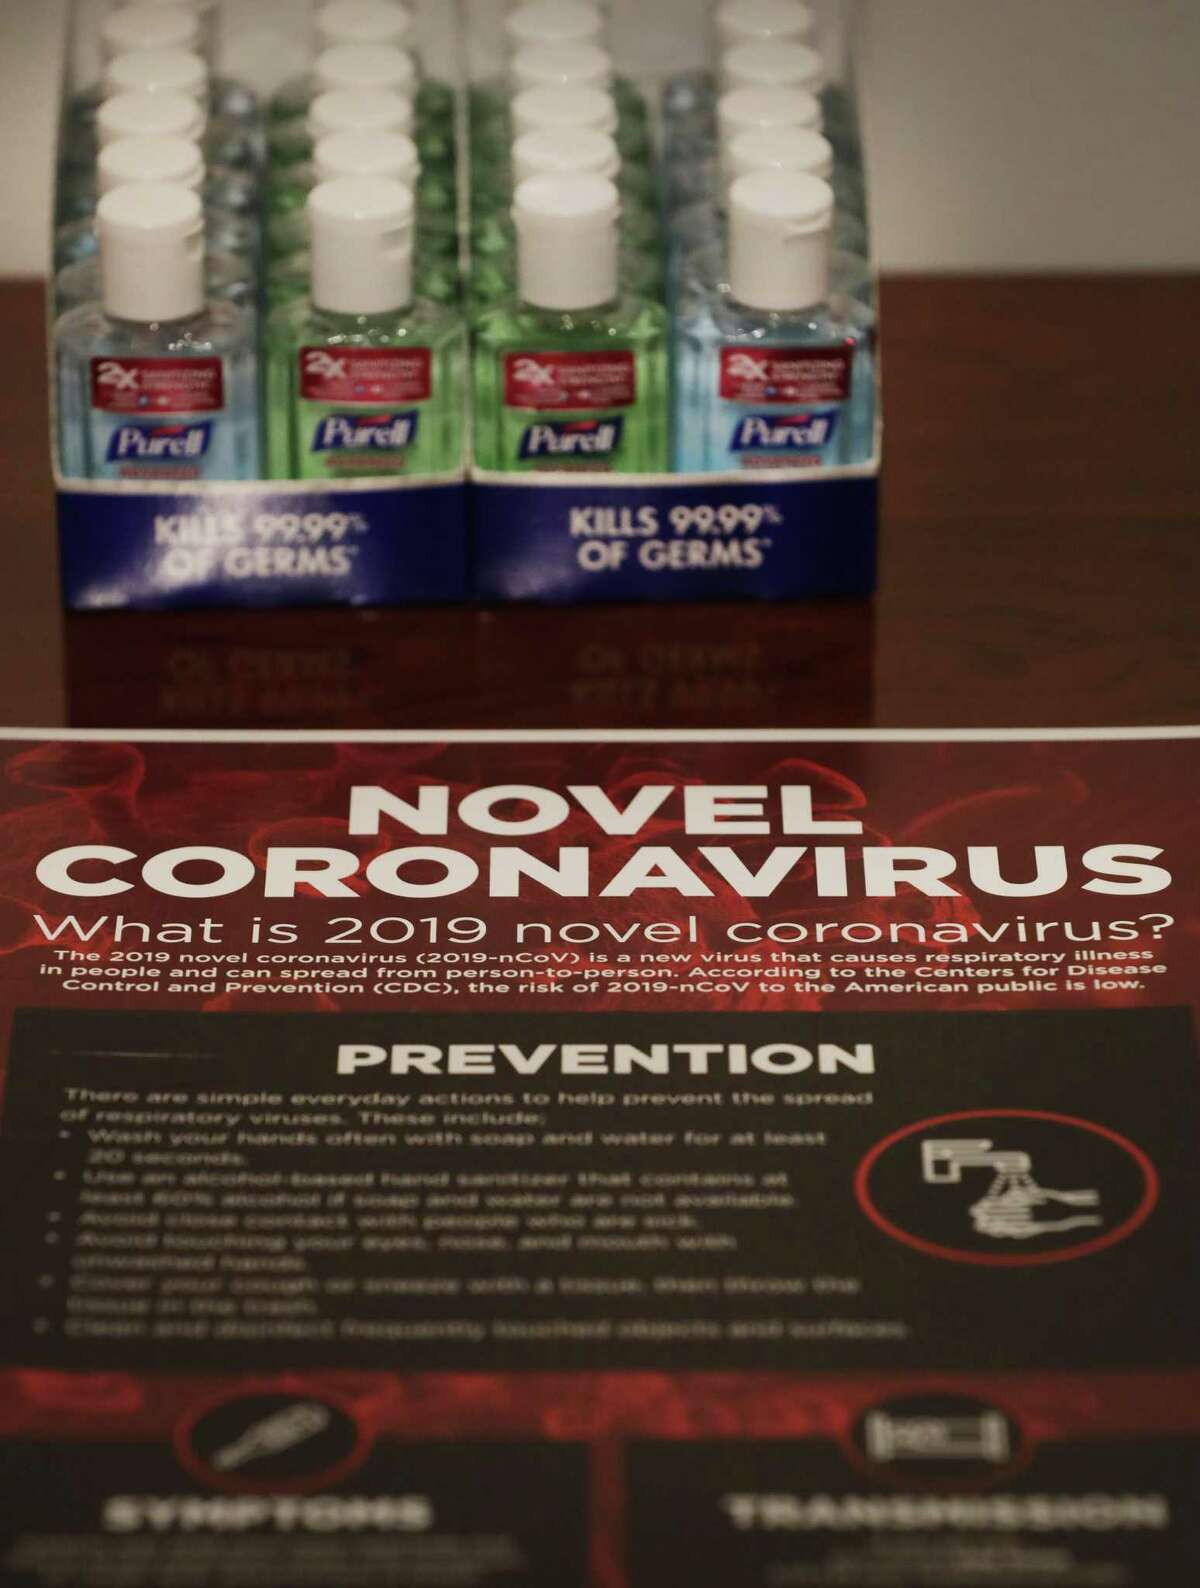 Small bottles of hand sanitizer and information about the novel coronavirus are displayed at a news conference where San Antonio officials answered questions about the coronavirus and the evacuees from a cruise ship who are under quarantine at Joint Base San Antonio-Lackland.